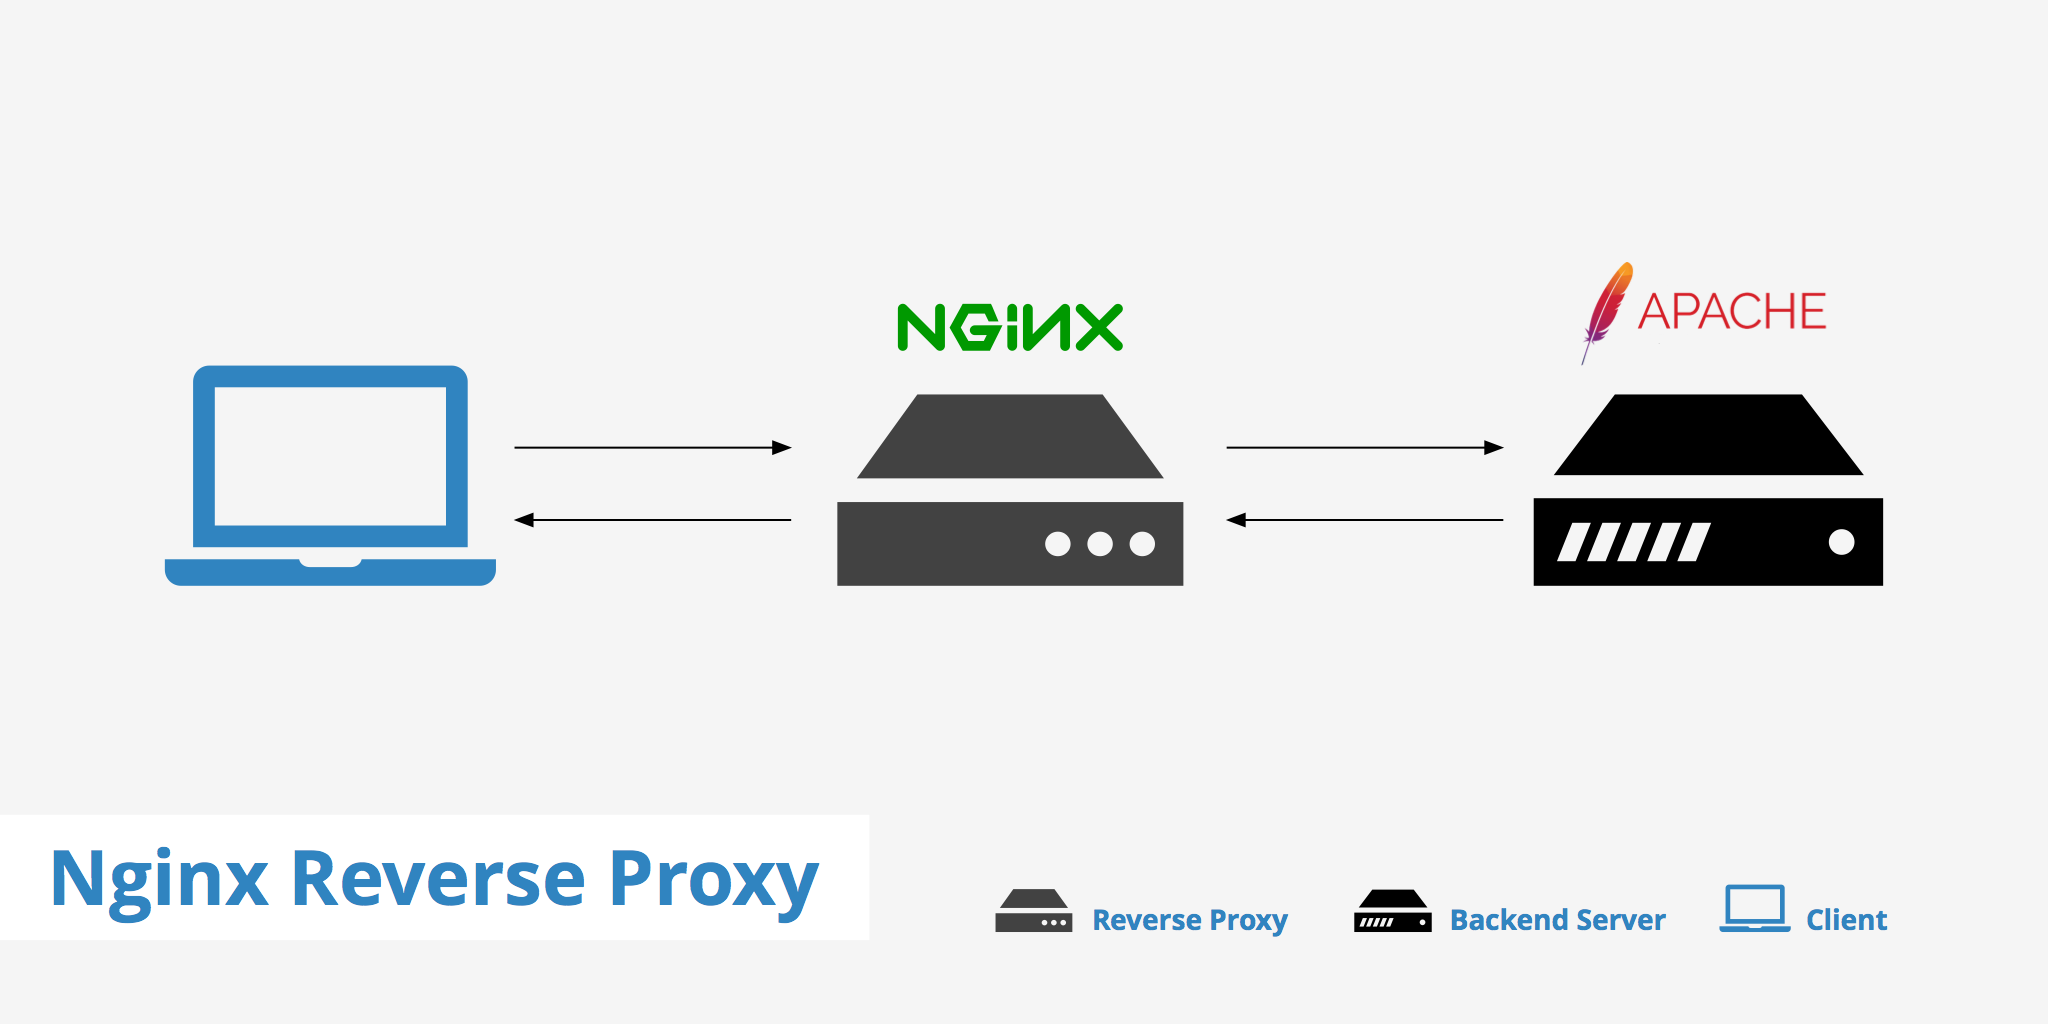 set-up-nginx-reverse-proxy-howto-linux-logo